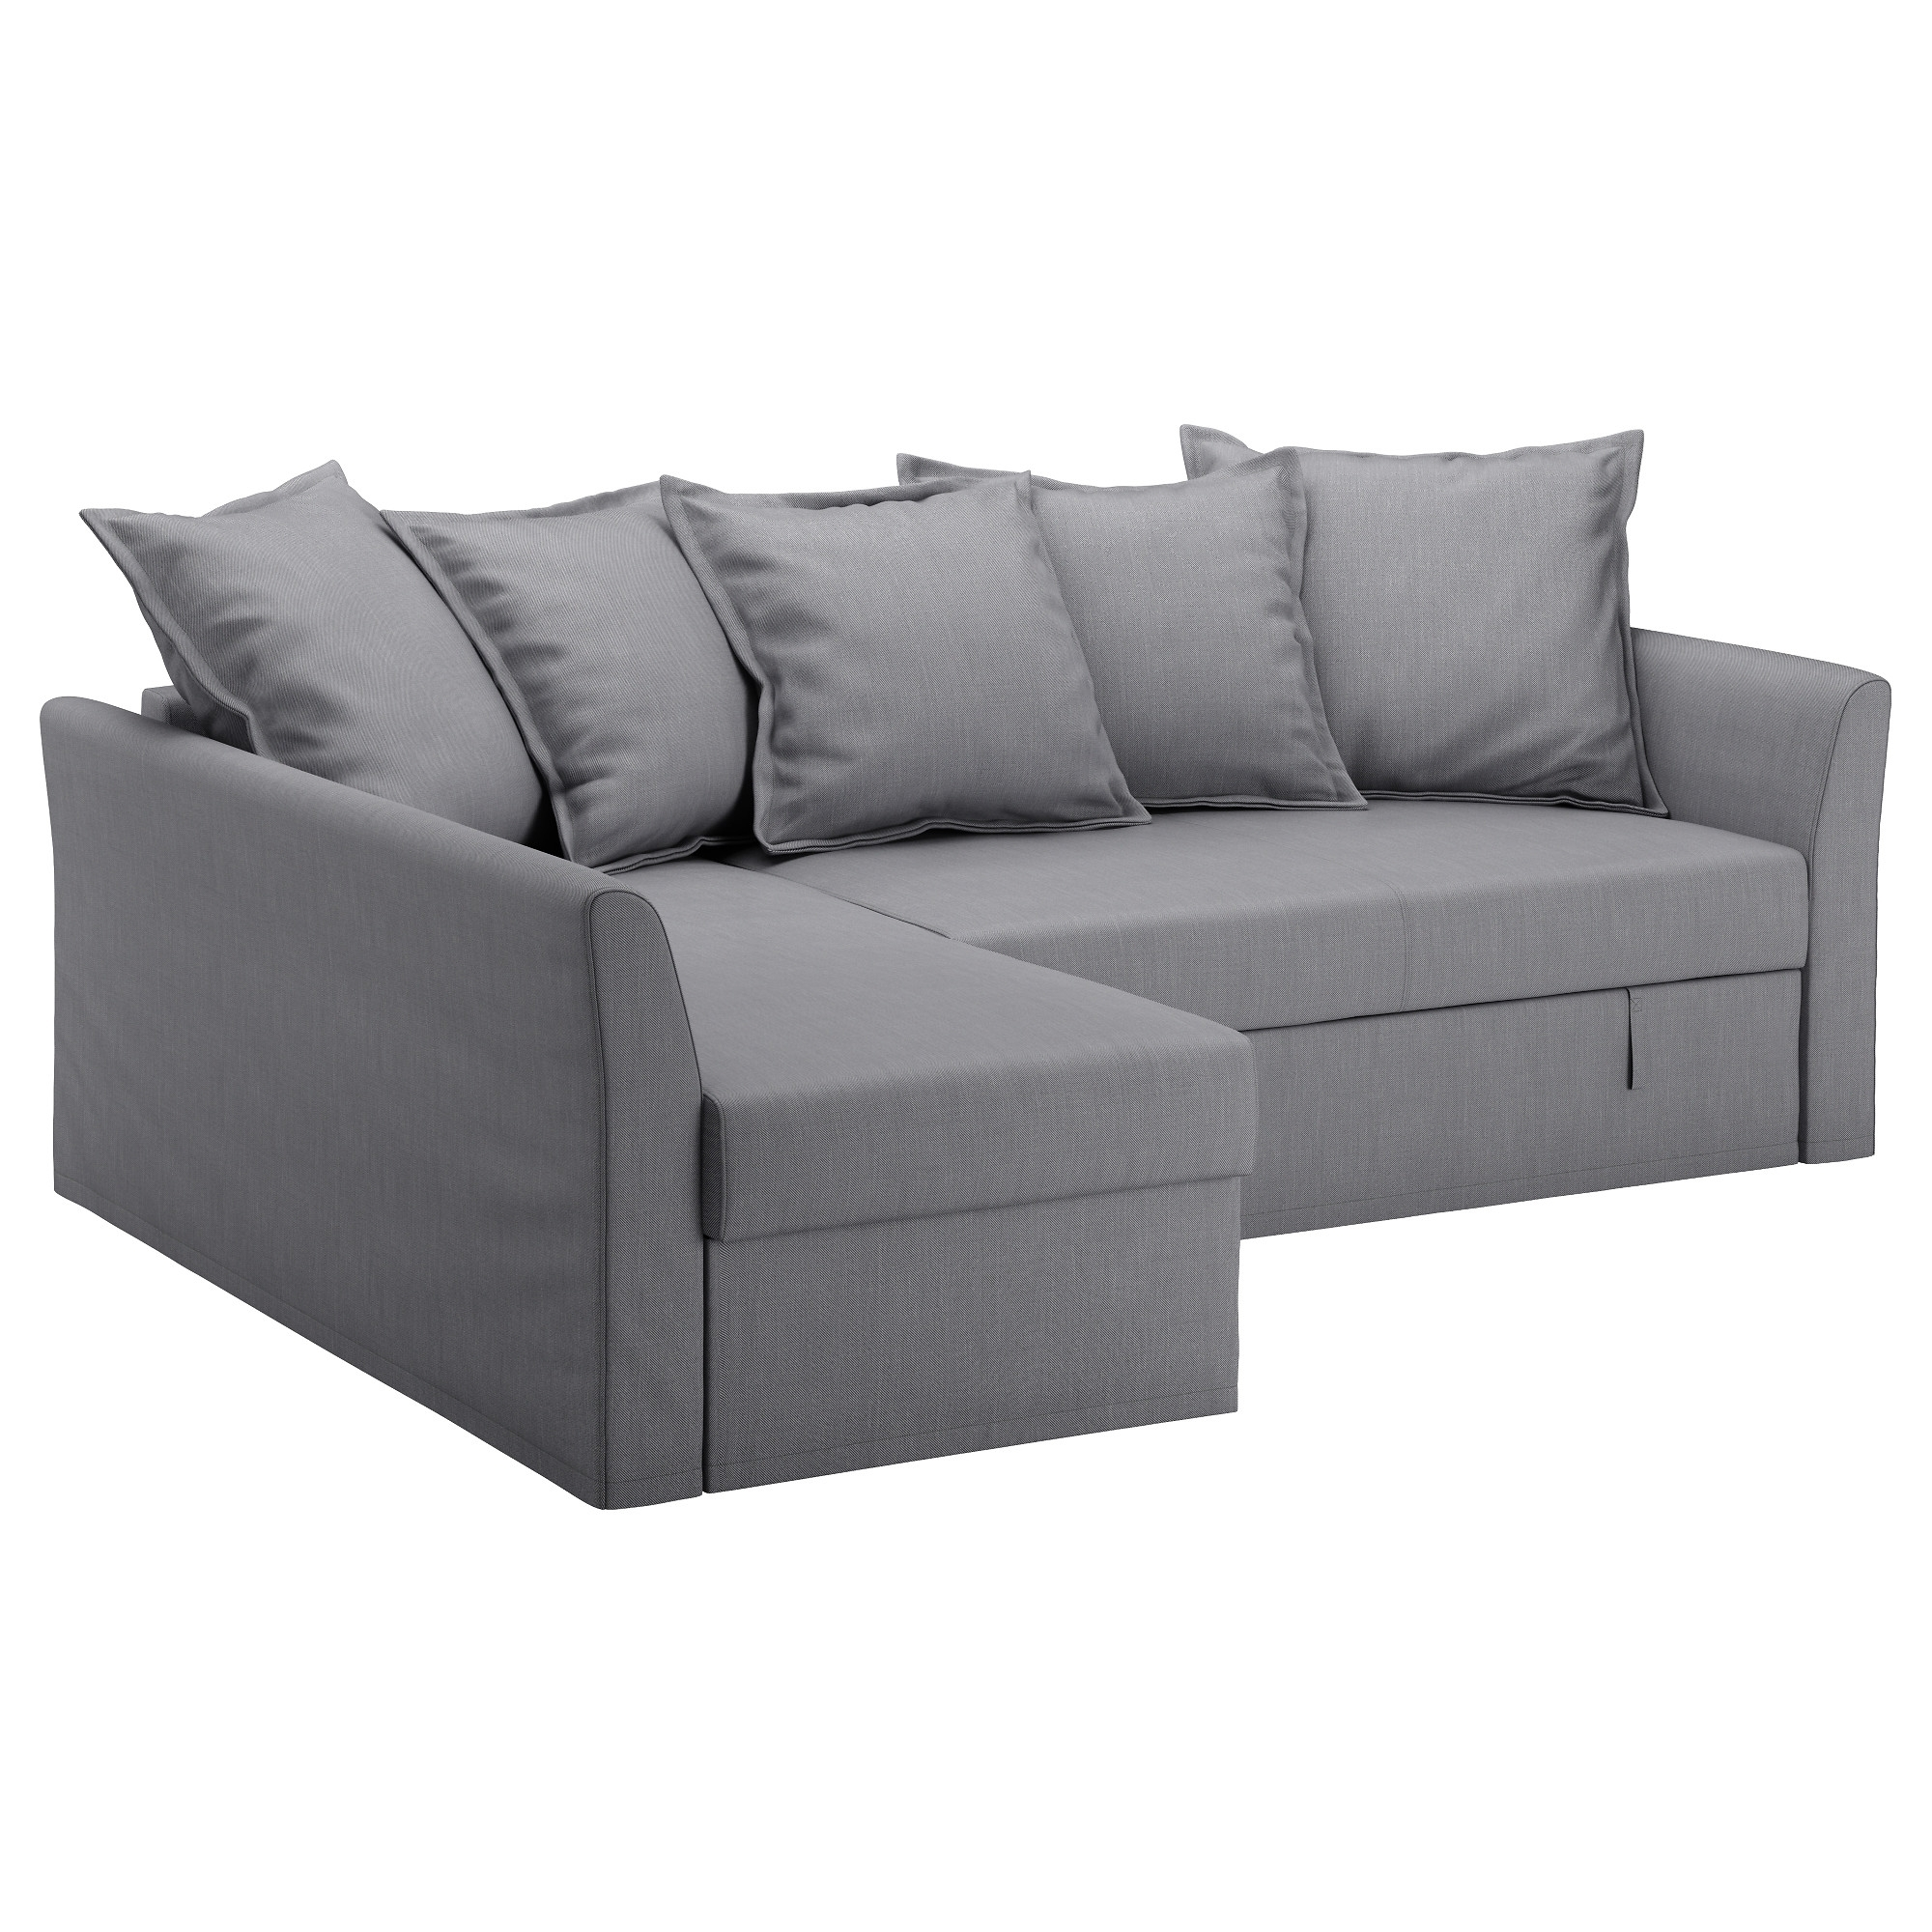 full leatherfagrey ashley singular sale sleeperfa amazon photo queengray inspirations gray living sofa size sectionalsgray chaise of grey sectional salegrey with coral graygrey sleeper